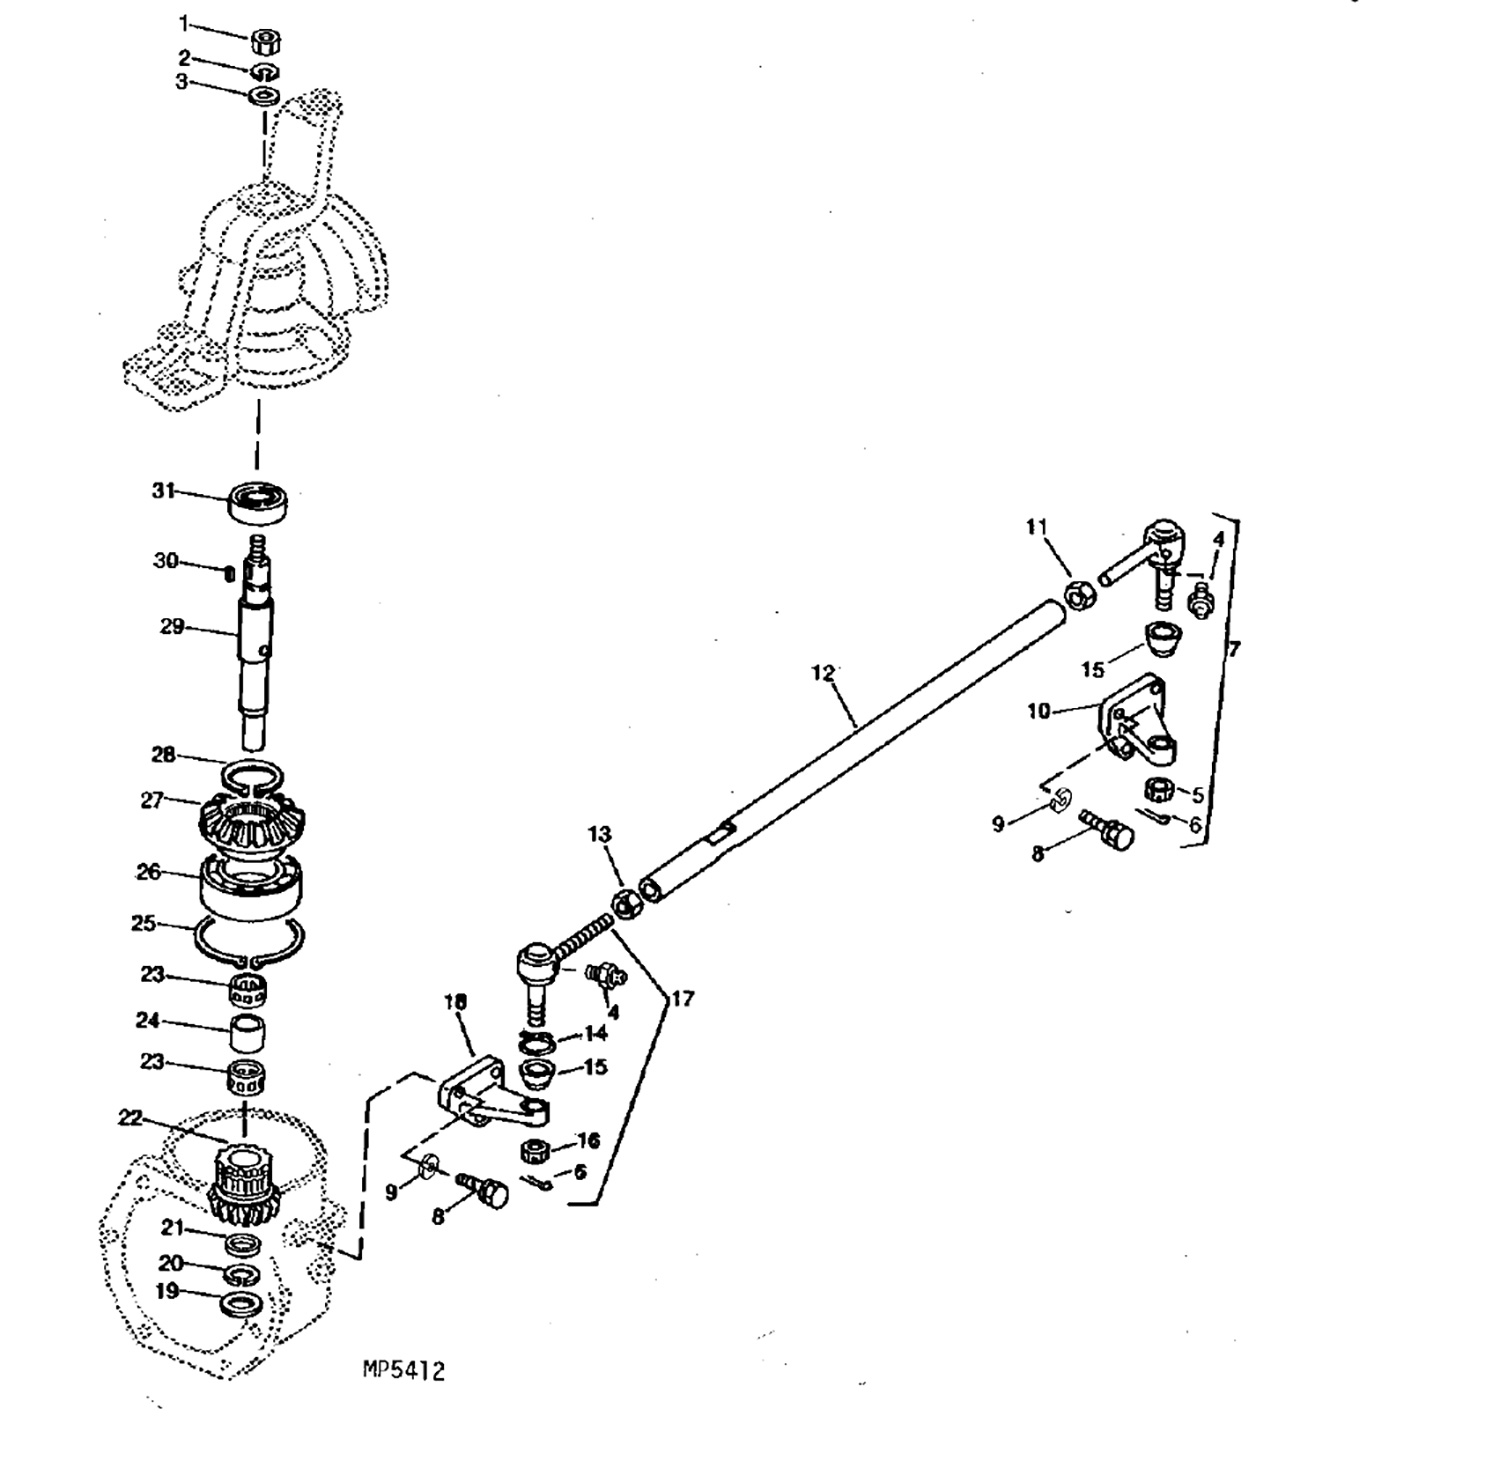 Cub Cadet 1430 Wiring Diagram moreover 8lx8y Hi How Install New Drive Belt John Deere G275 besides Wiring Diagram For Cub Cadet Zero Turn The Wiring Diagram 3 in addition Drive Belt Replacement Scotts 2046h 368359 as well Cub Cadet 1320 Wiring Diagram. on john deere 1050 wiring diagram